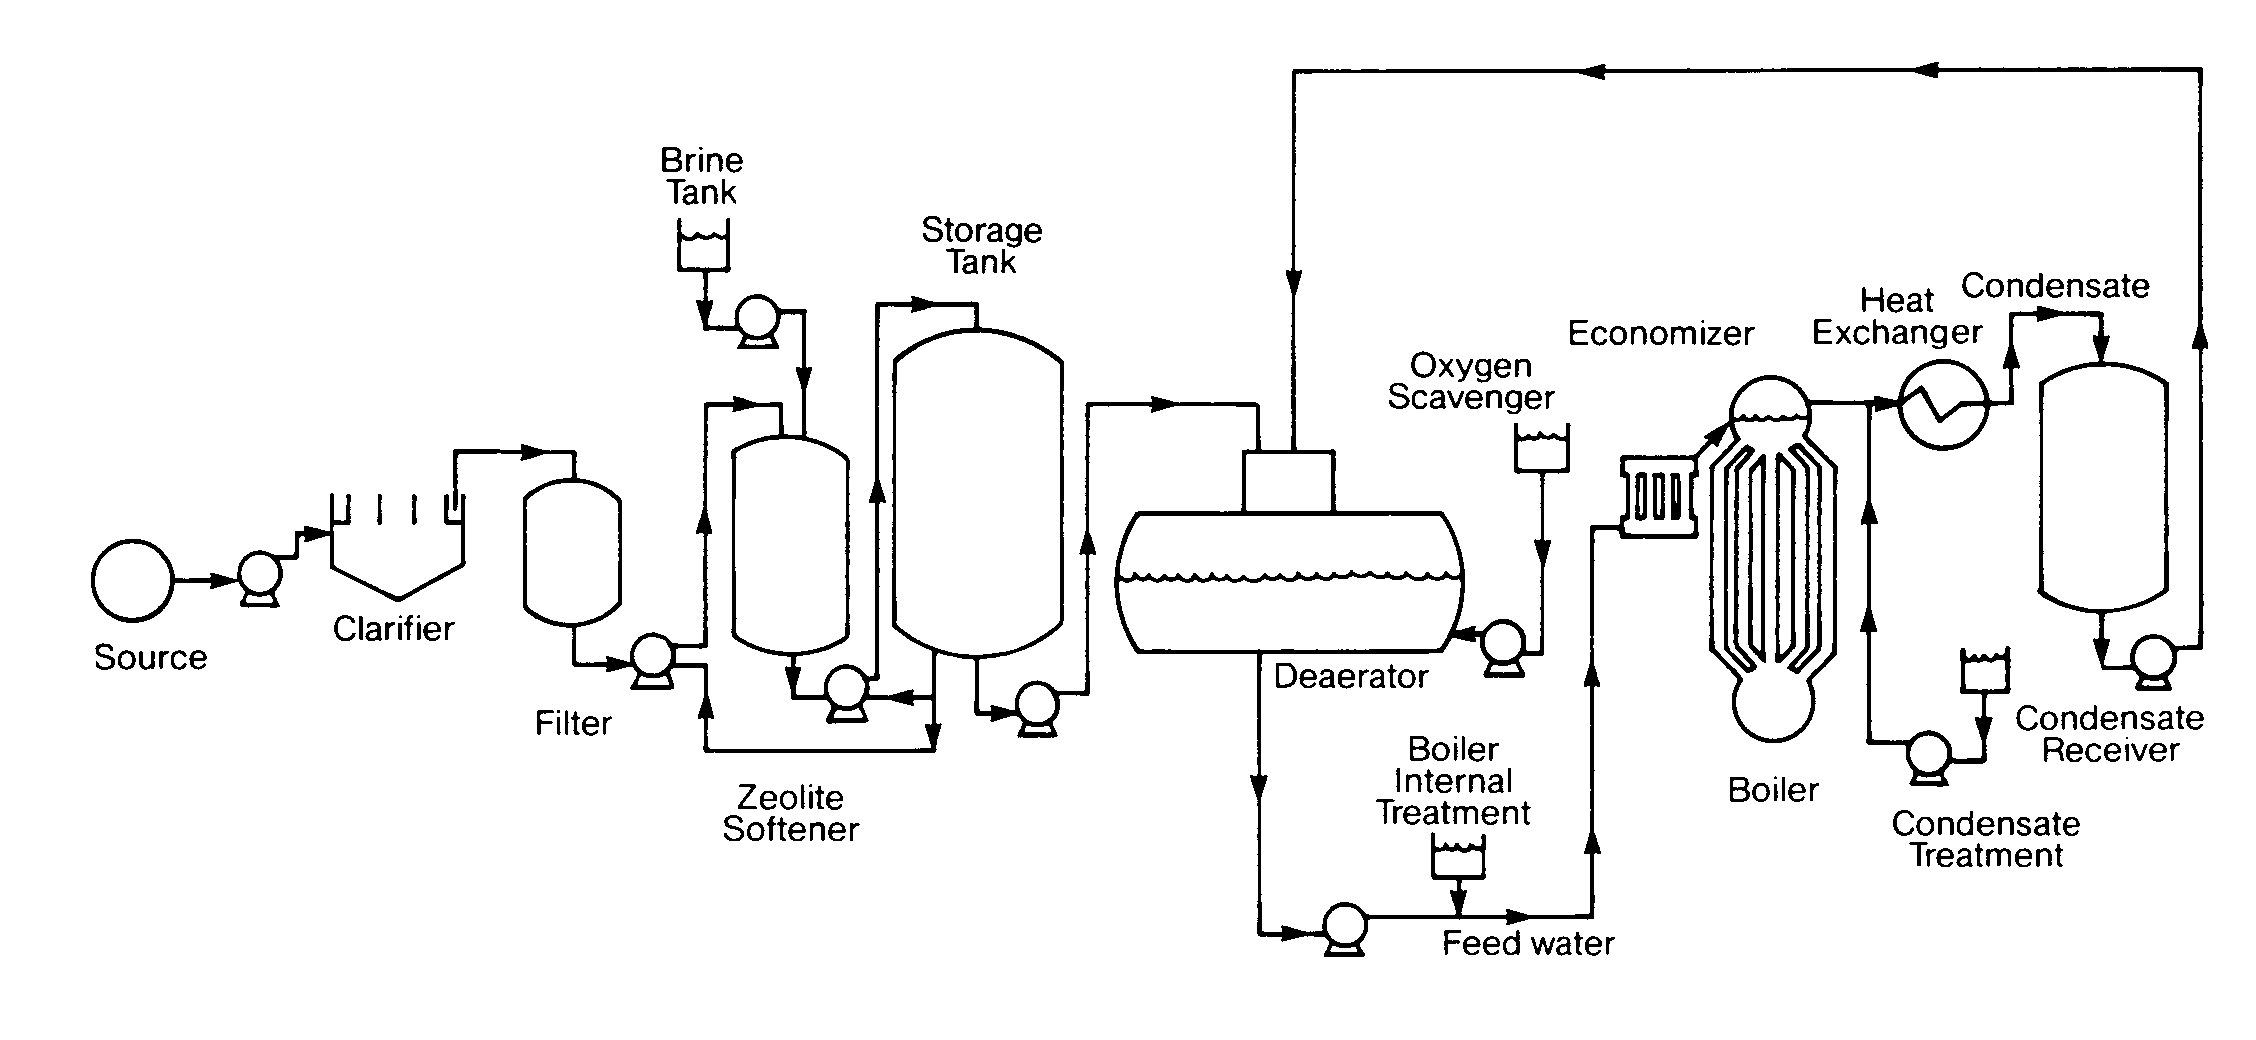 Wiring Diagram Condensate Feedwater Tank Heat Exchanger